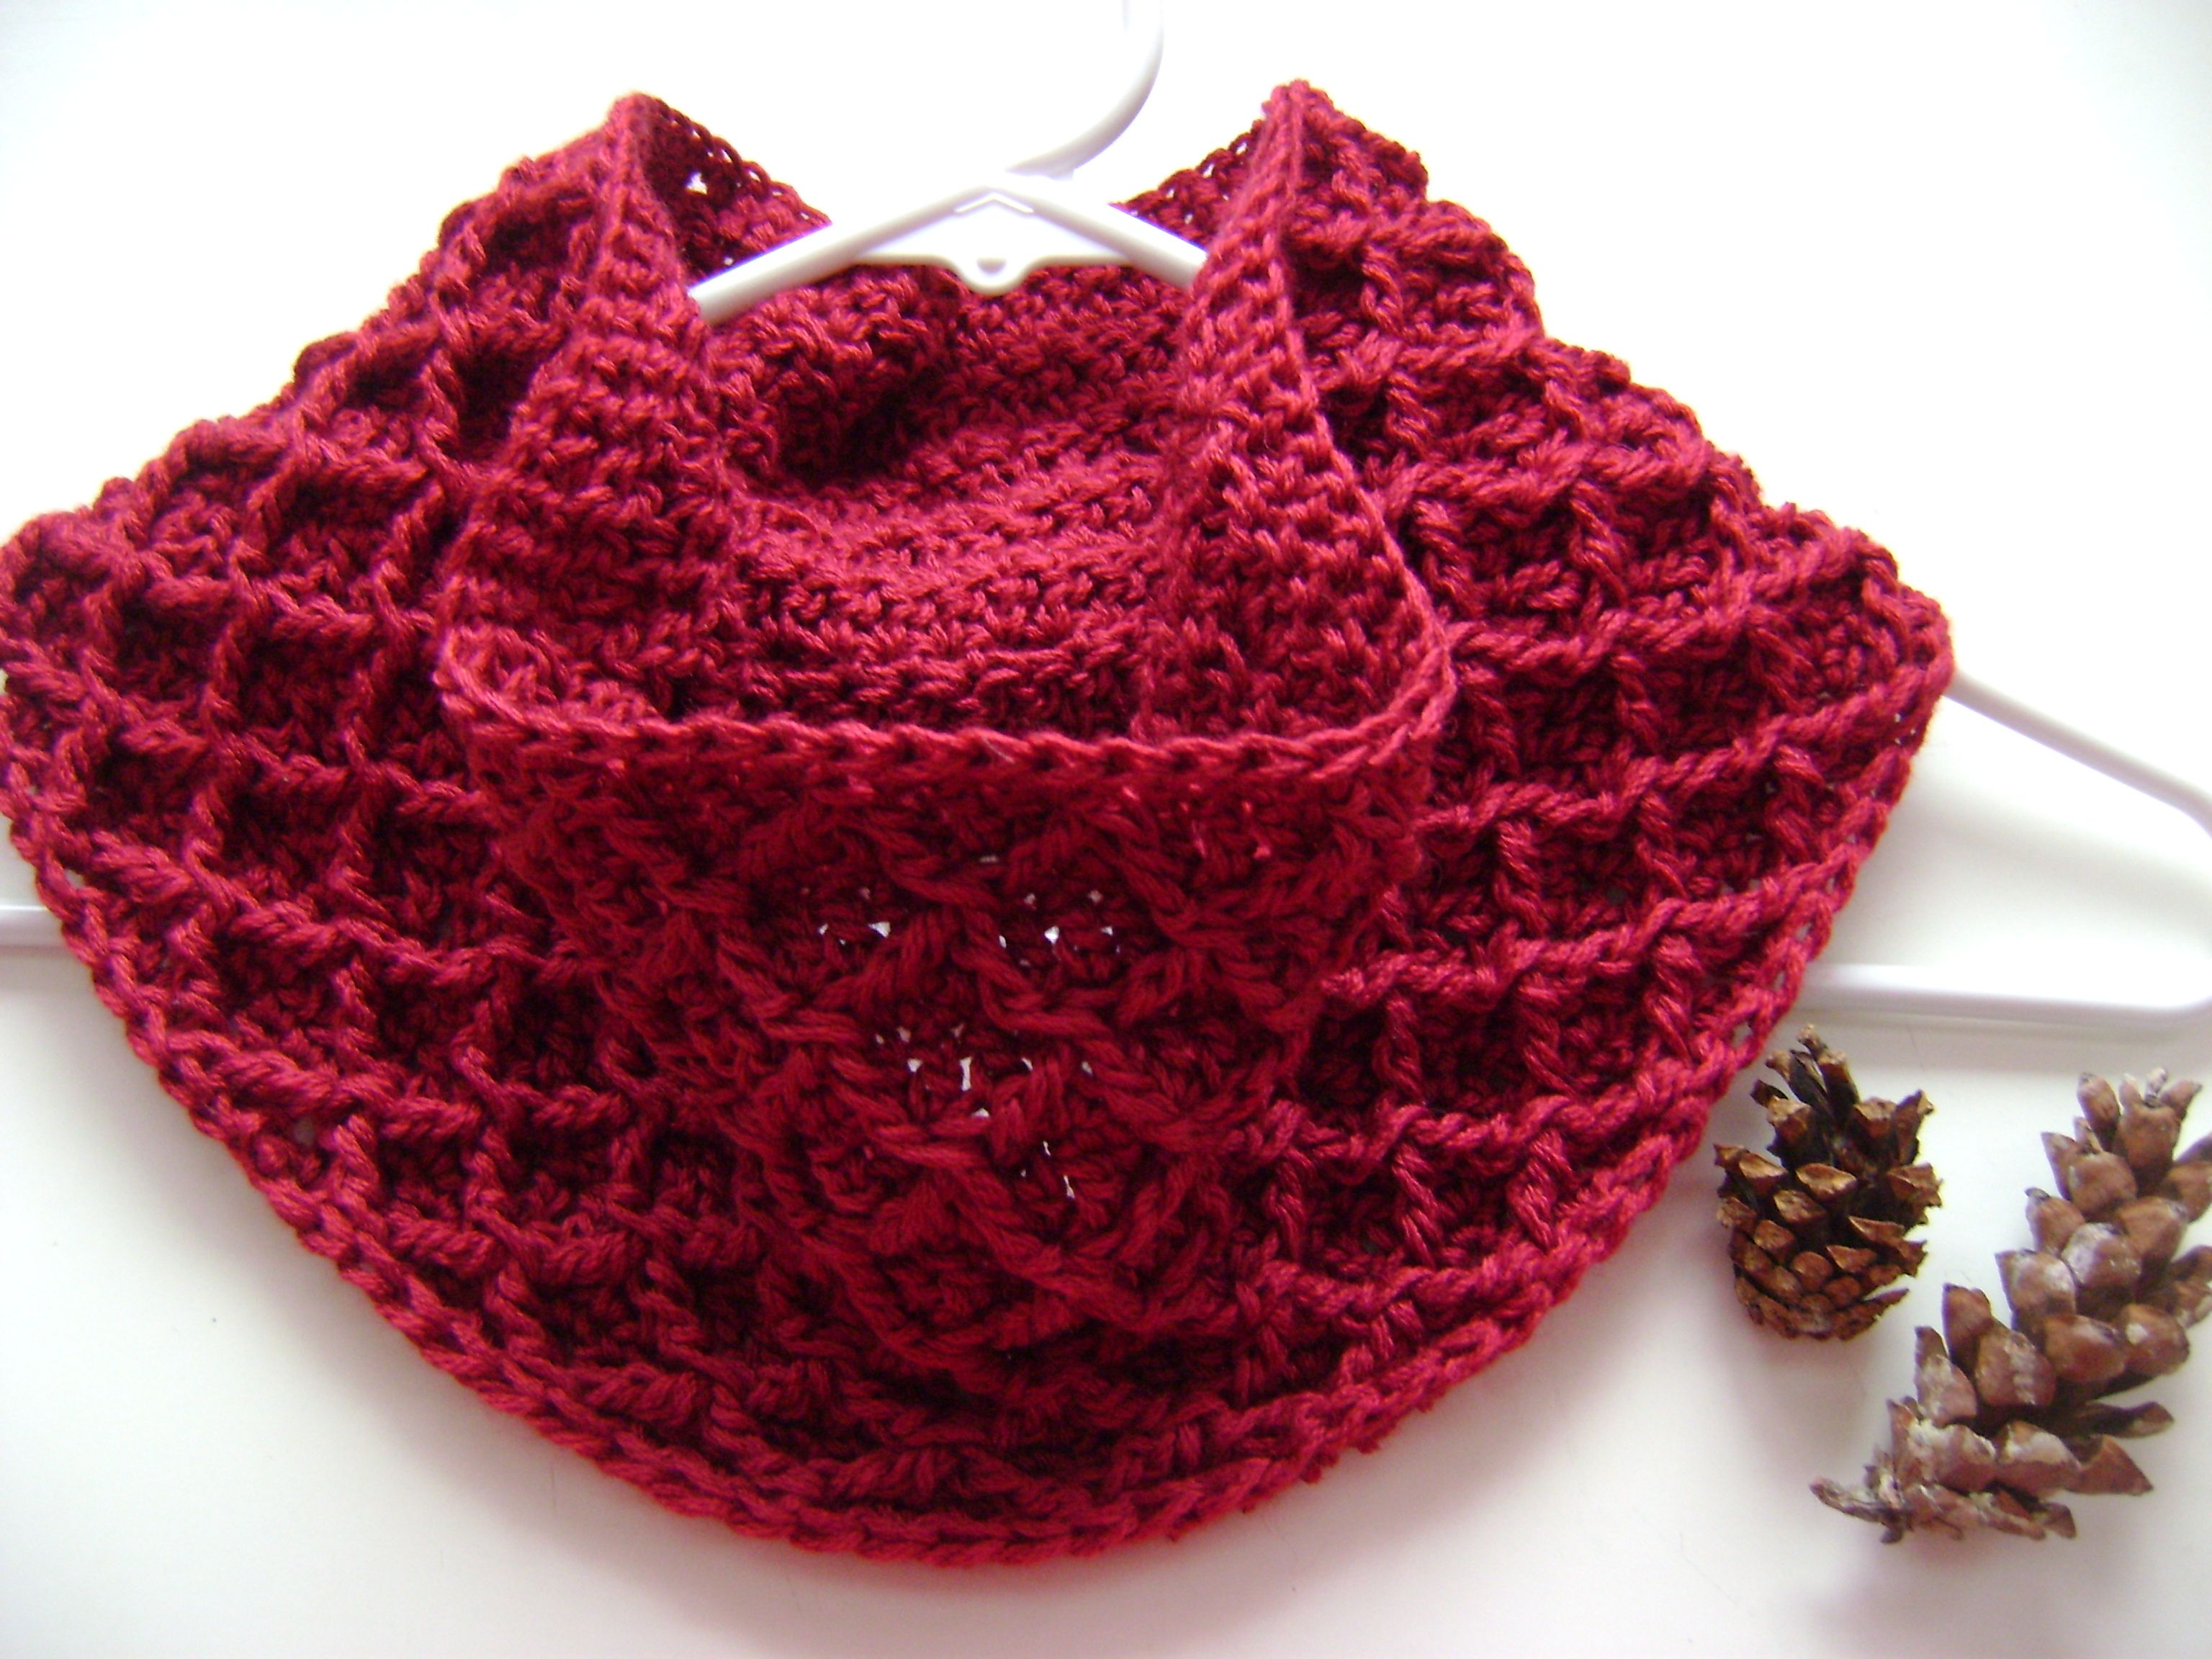 Diamond crochet cowl free patternwhat a beautiful cowl share free crochet cowl pattern diamonds cables winter scarfcowl free pattern comes in two variations one as a neckwarmer and the other shown in berry red bankloansurffo Choice Image